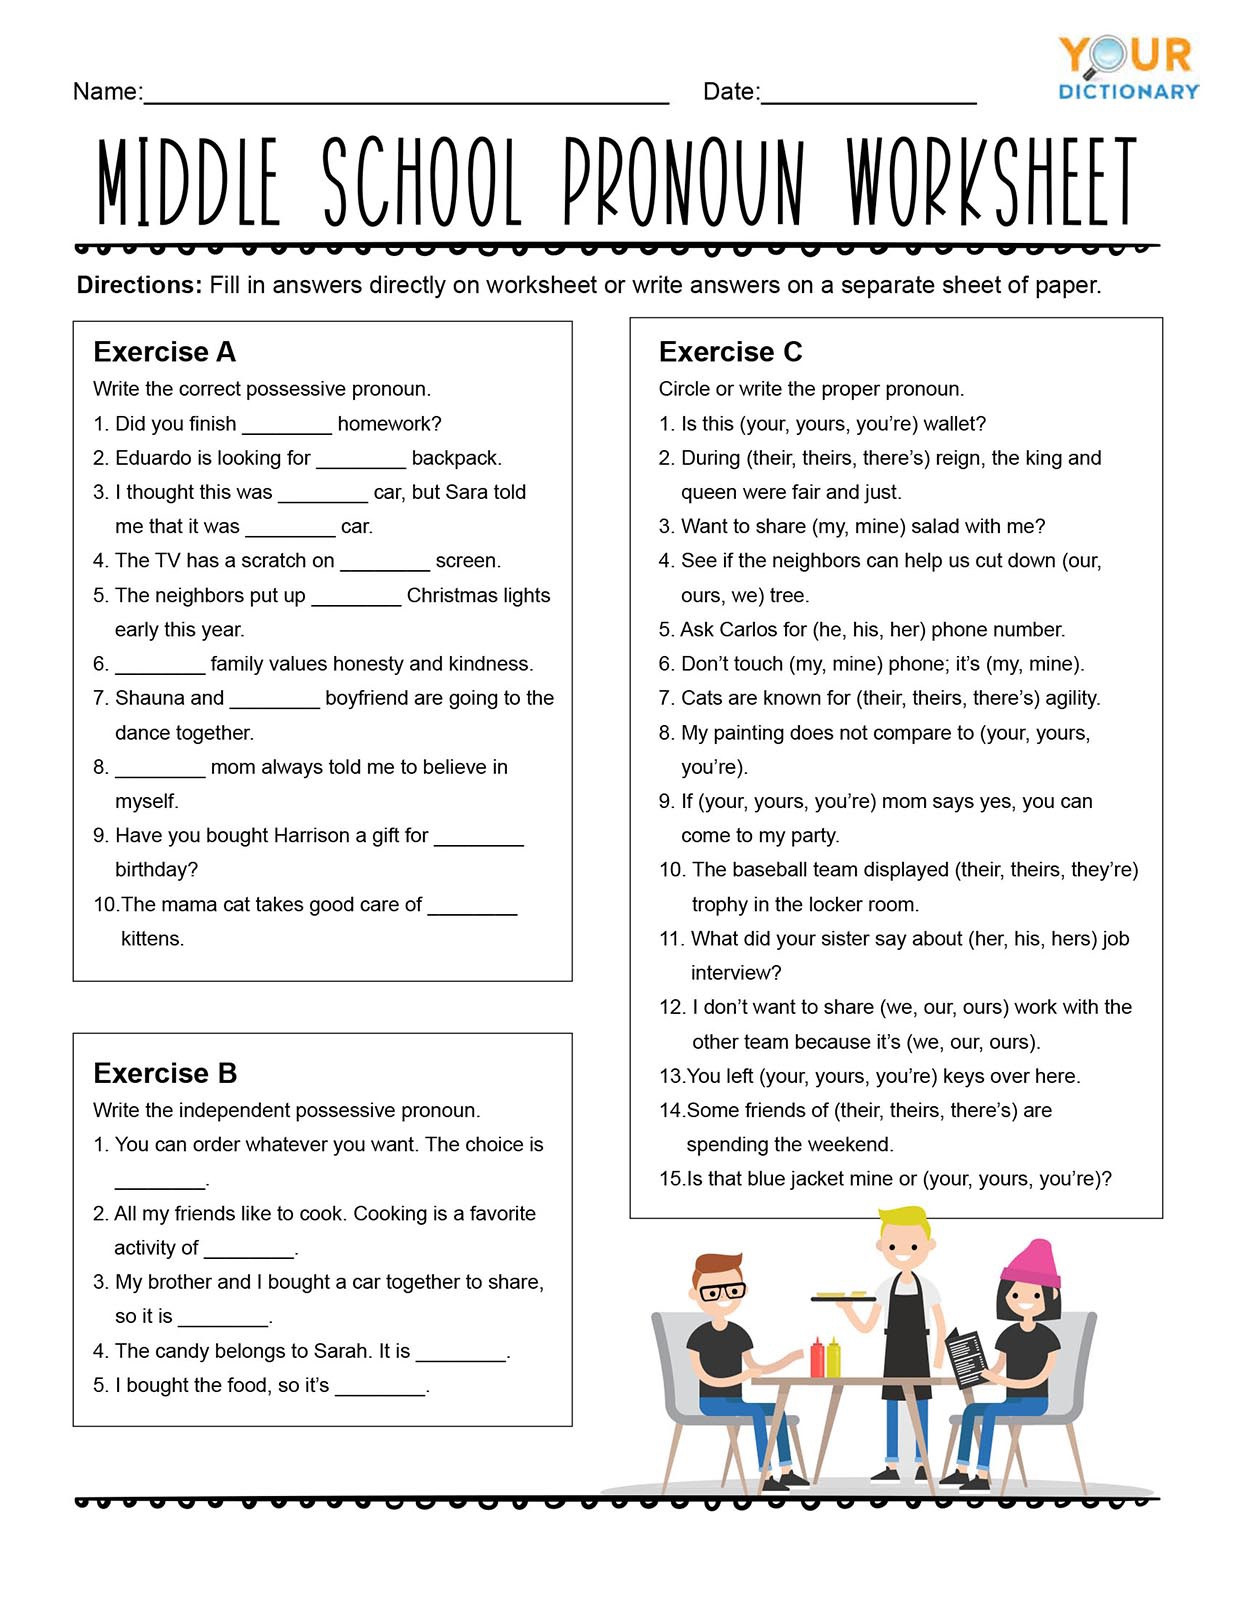 Possessive Pronoun Worksheet 3rd Grade Pronoun Worksheets for Practice and Review